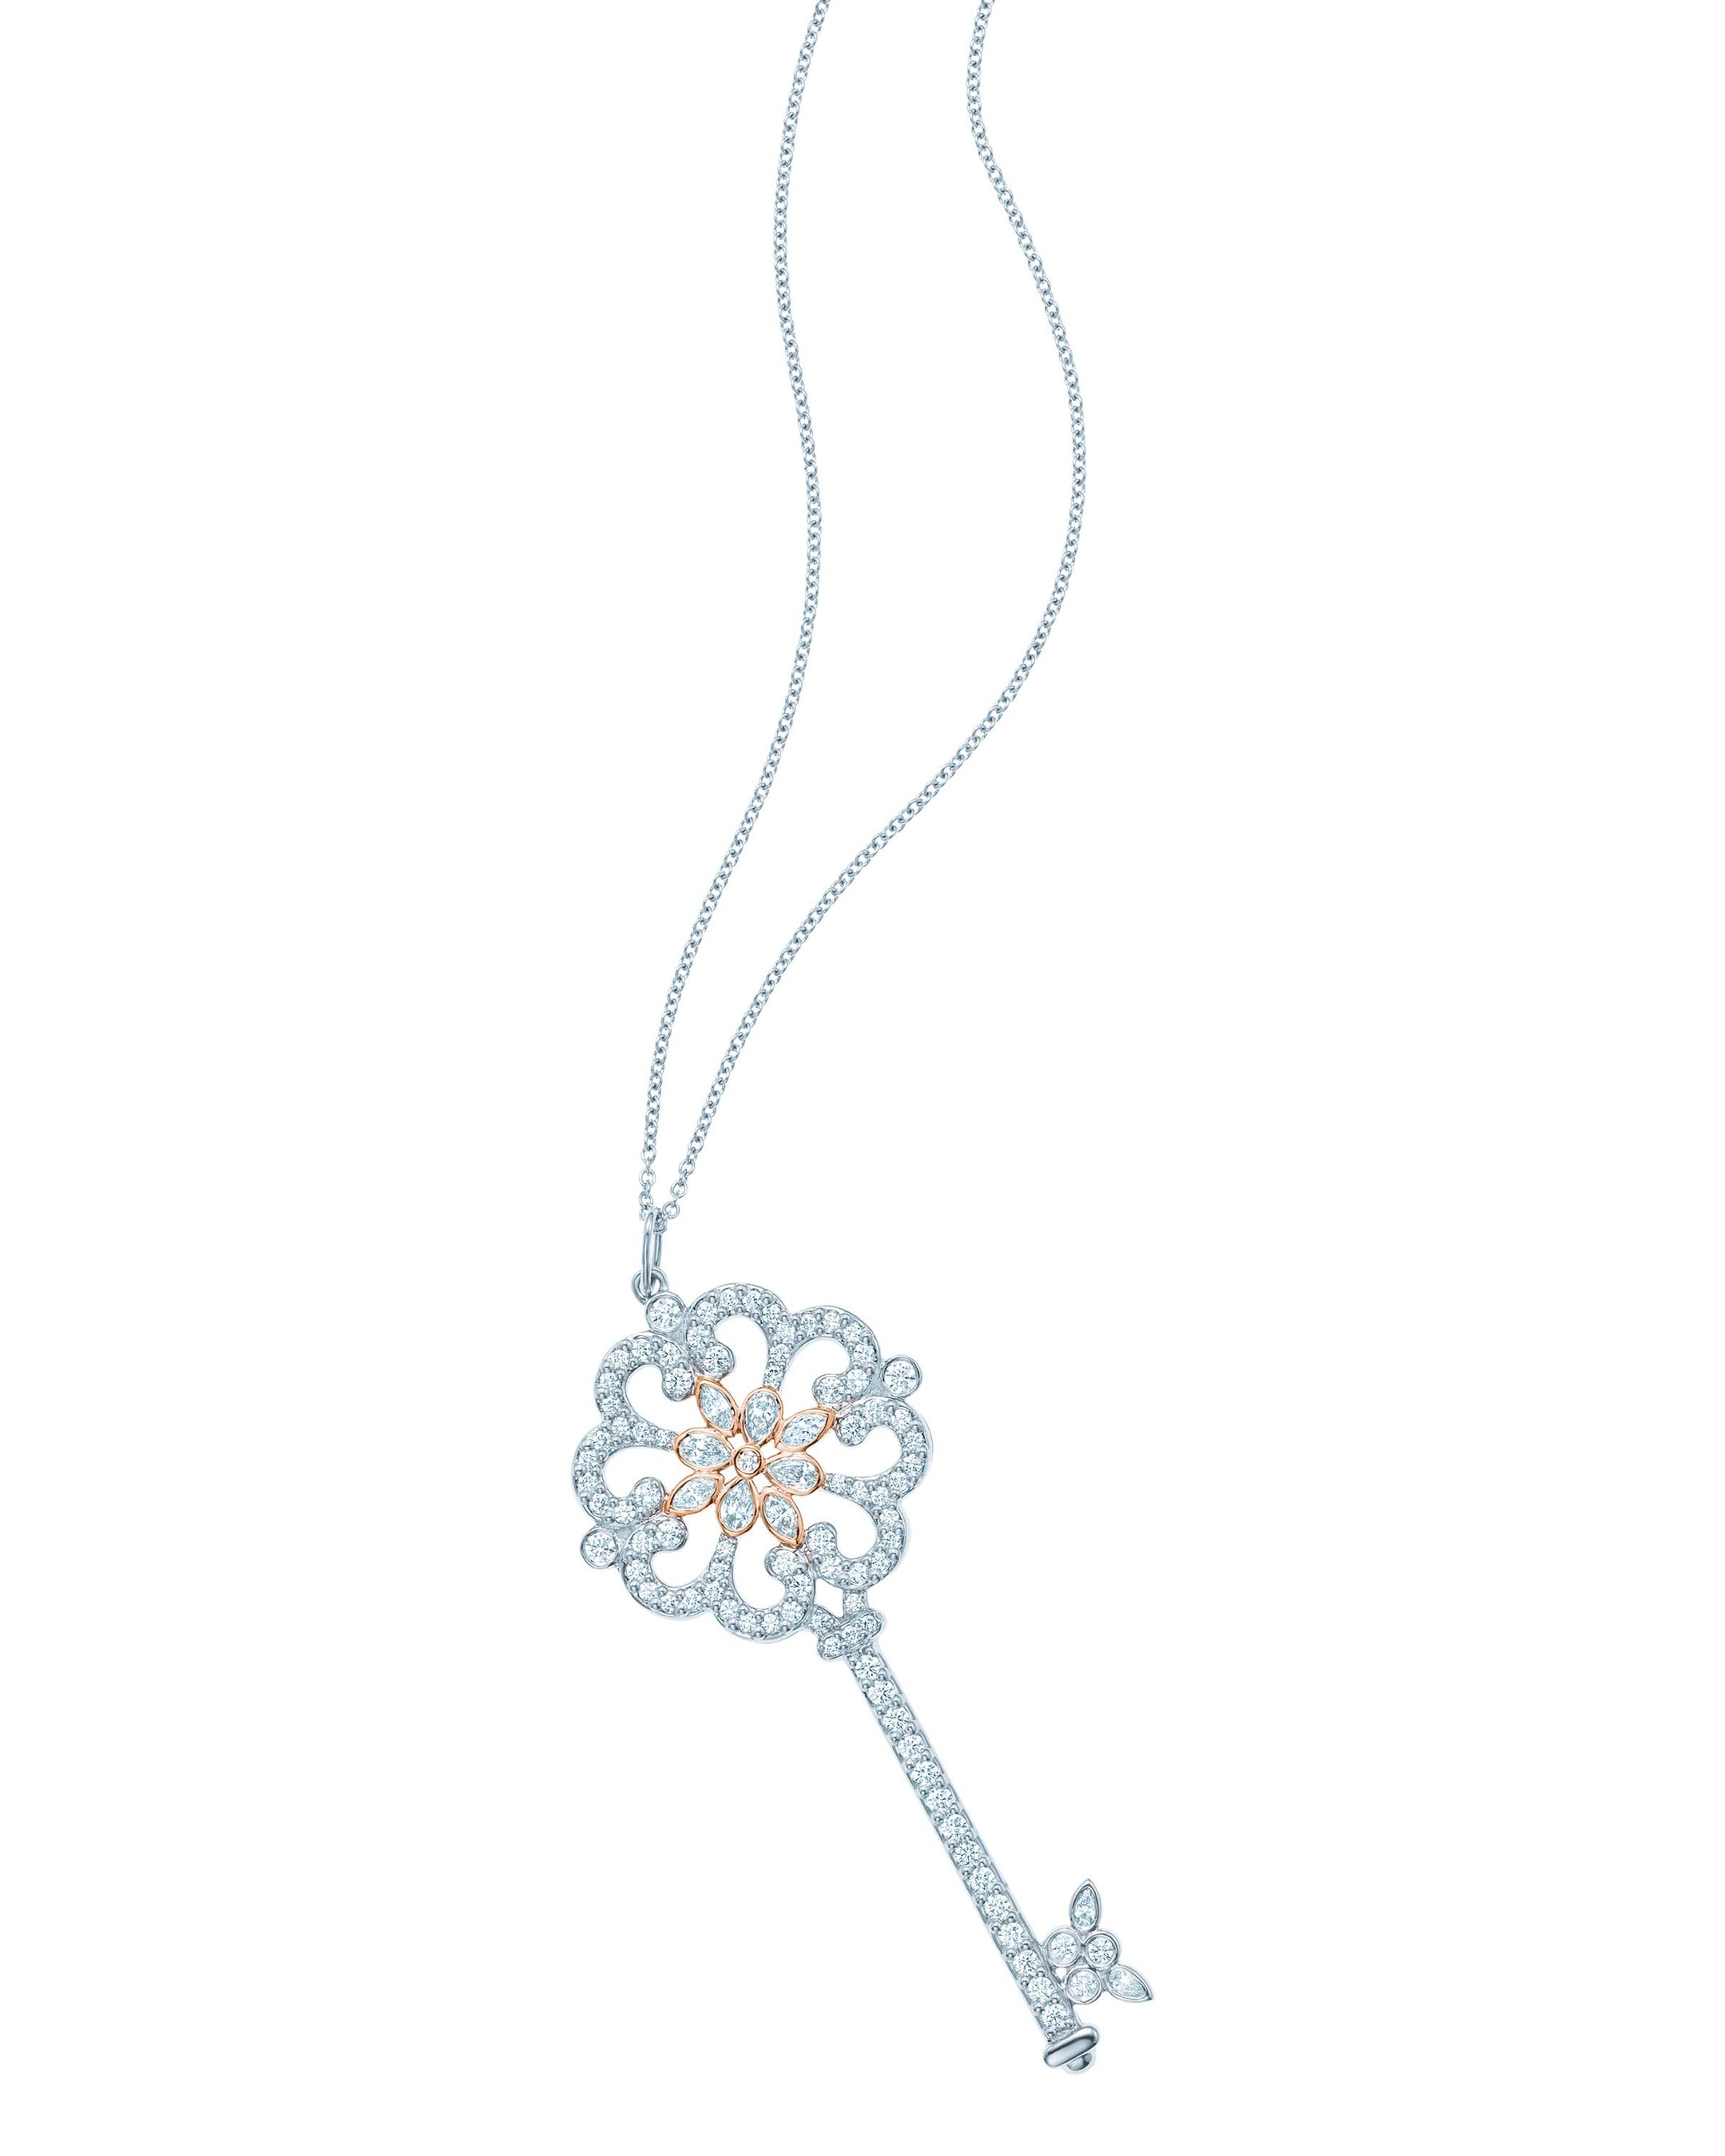 Tiffany Enchant Primrose Key pendant in platinum and rose gold with diamonds from £7,100.